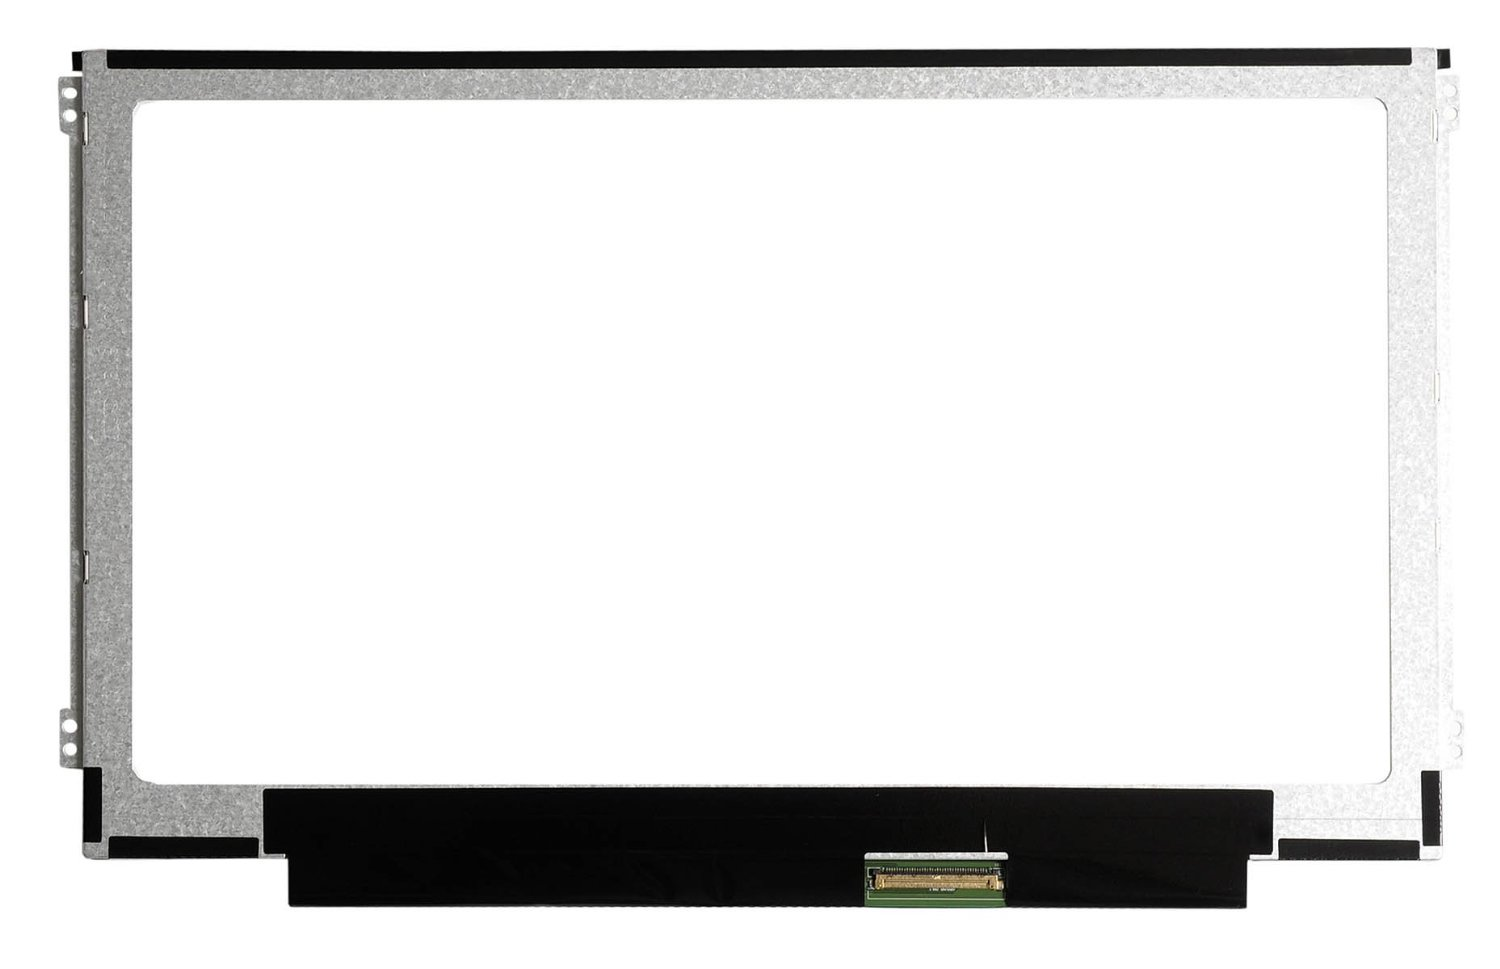 For HP PAVILION DM1Z-3000 REPLACEMENT LAPTOP 11.6 LCD LED Display Screen , DM1 SeriesFor HP PAVILION DM1Z-3000 REPLACEMENT LAPTOP 11.6 LCD LED Display Screen , DM1 Series